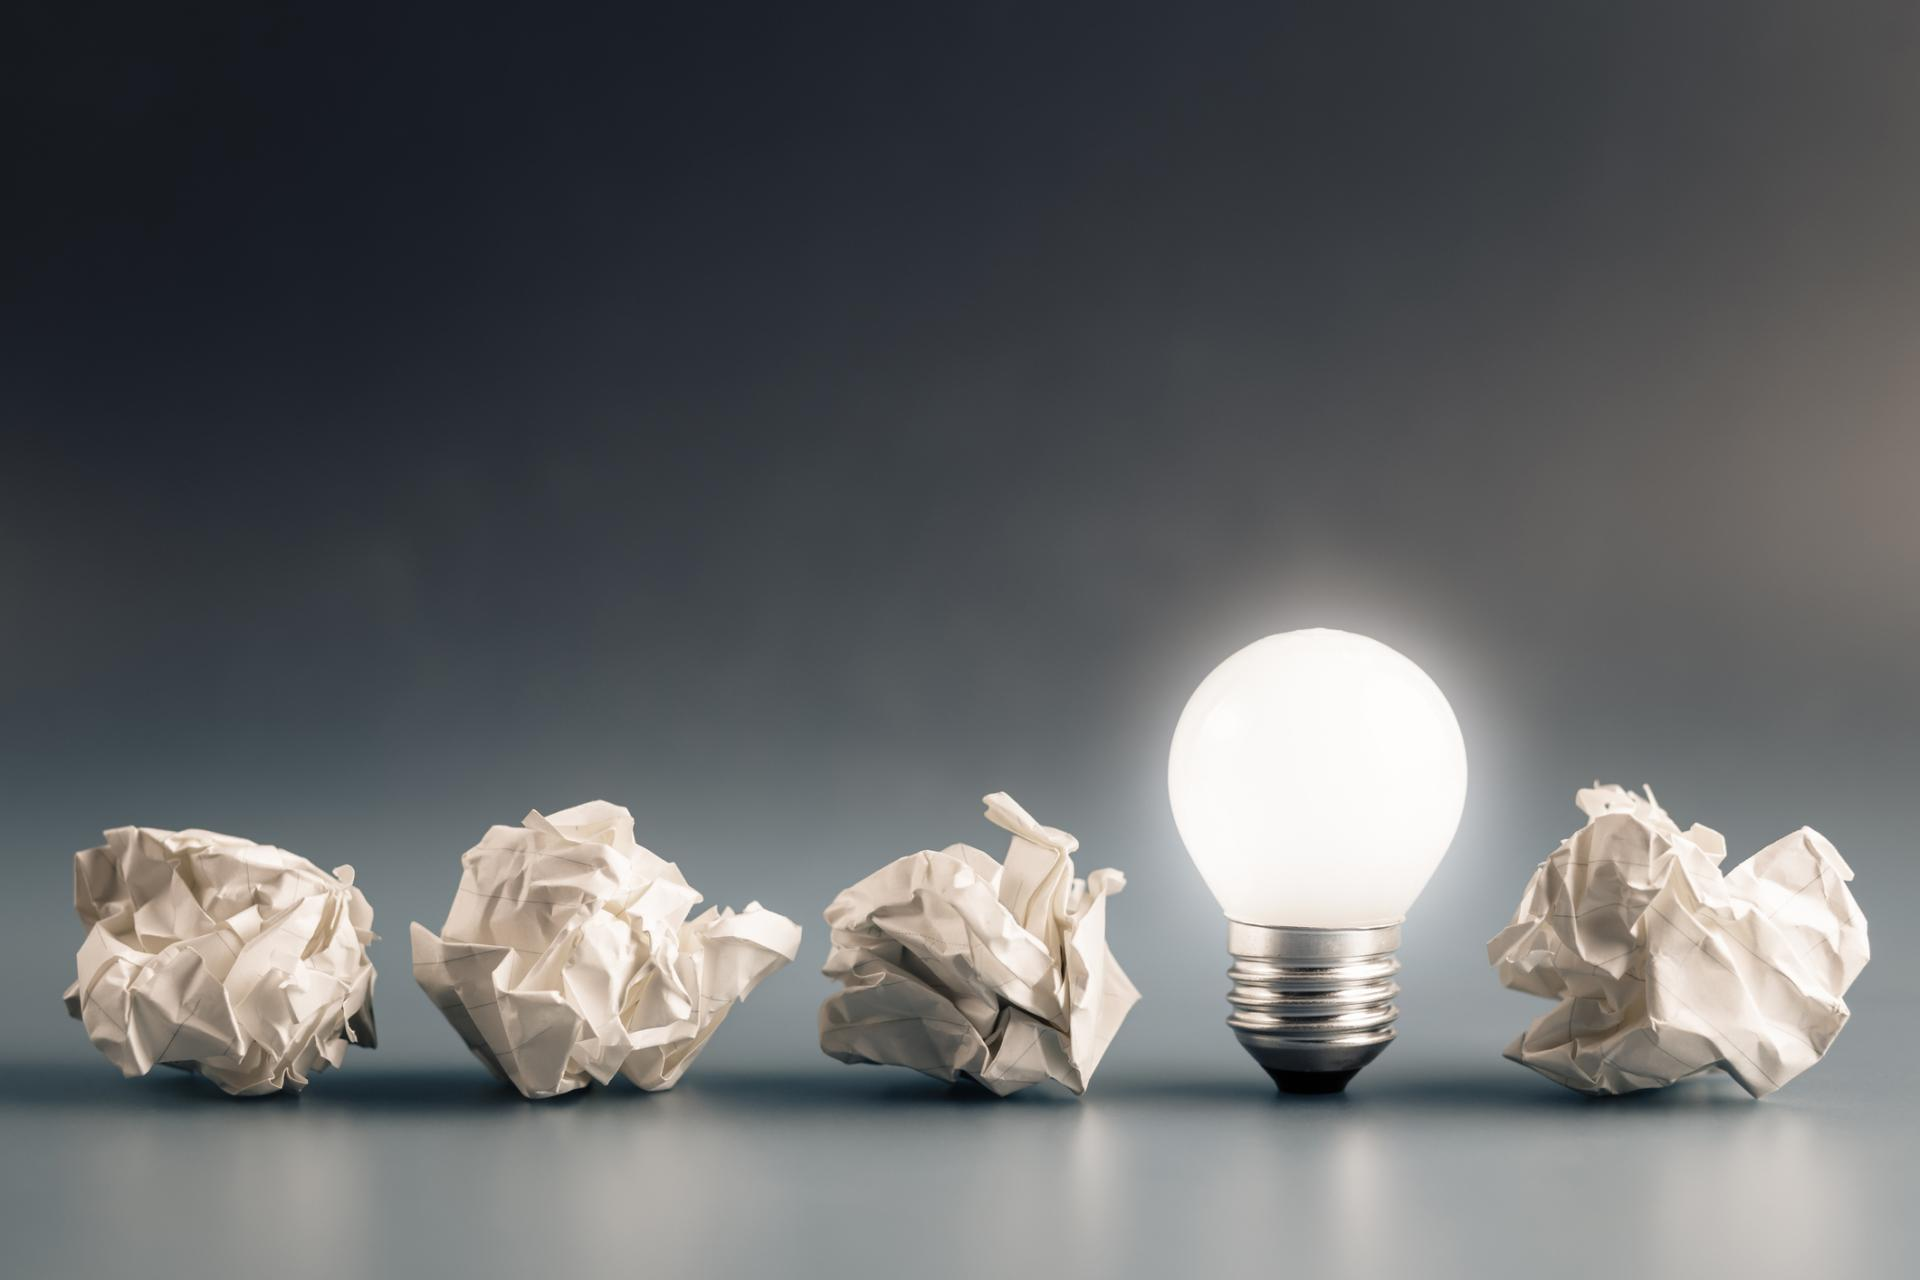 crumpled papers and a light bulb showing we need to fail for our success